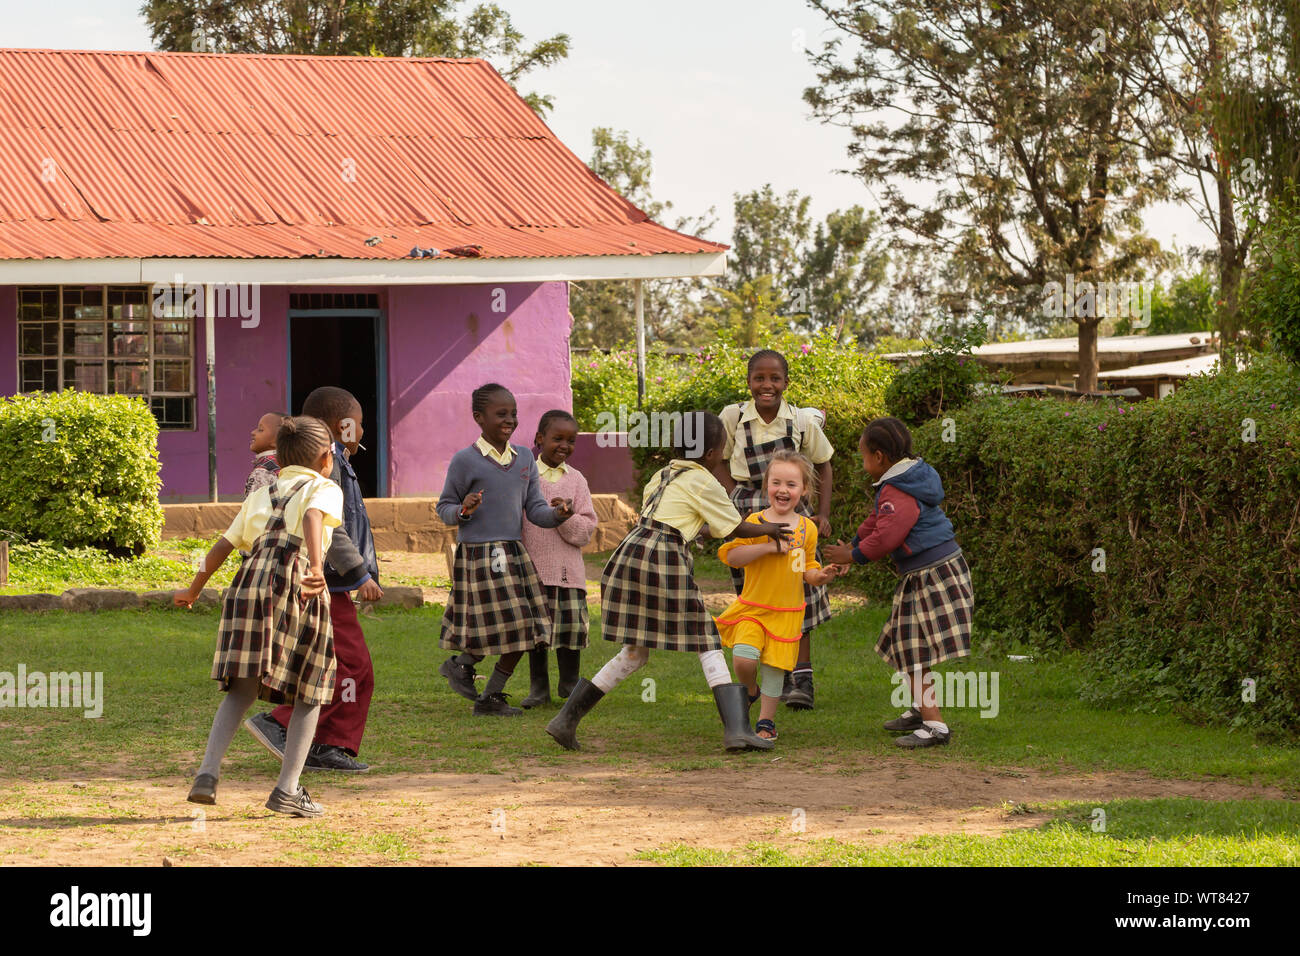 Imani Junior Academy, Nanyuki, Laikipia county, Kenya – June 13th, 2019: Candid photograph of young school children playing with a white girl who was Stock Photo